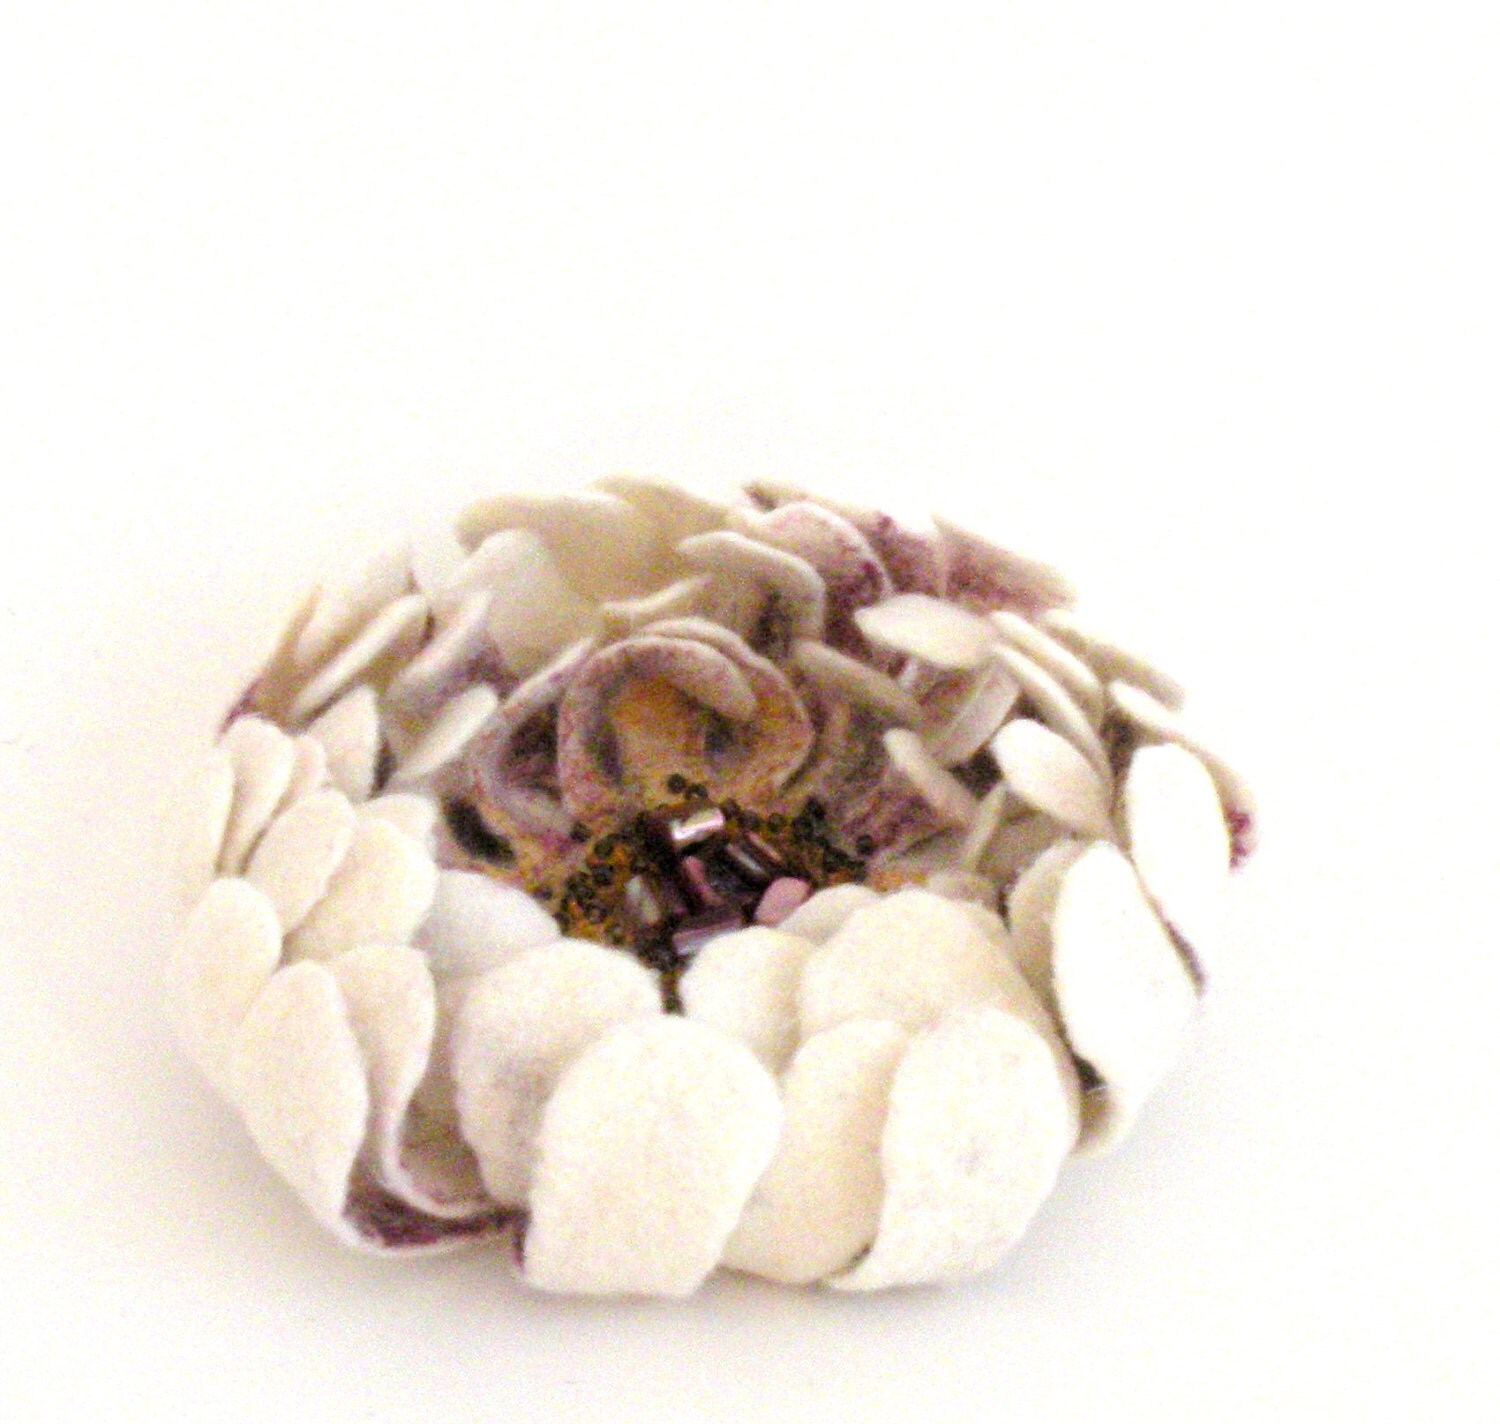 Felt flower pin brooch - natural white purple yellow flower - ready to ship - floral jewelry - bridal accessories - AgnesFelt